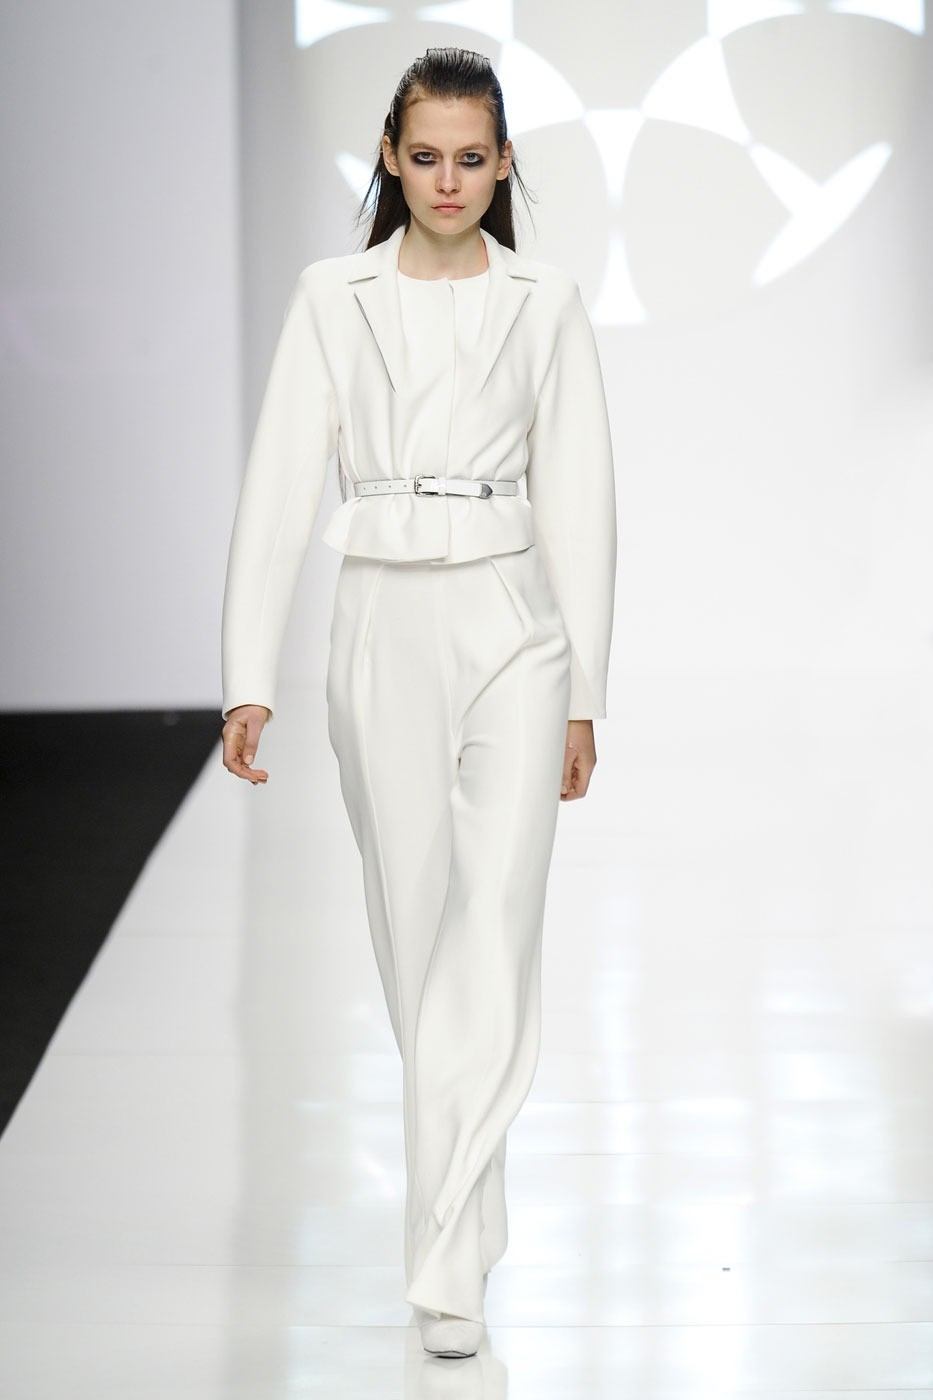 Byblos Fall/Winter 2012